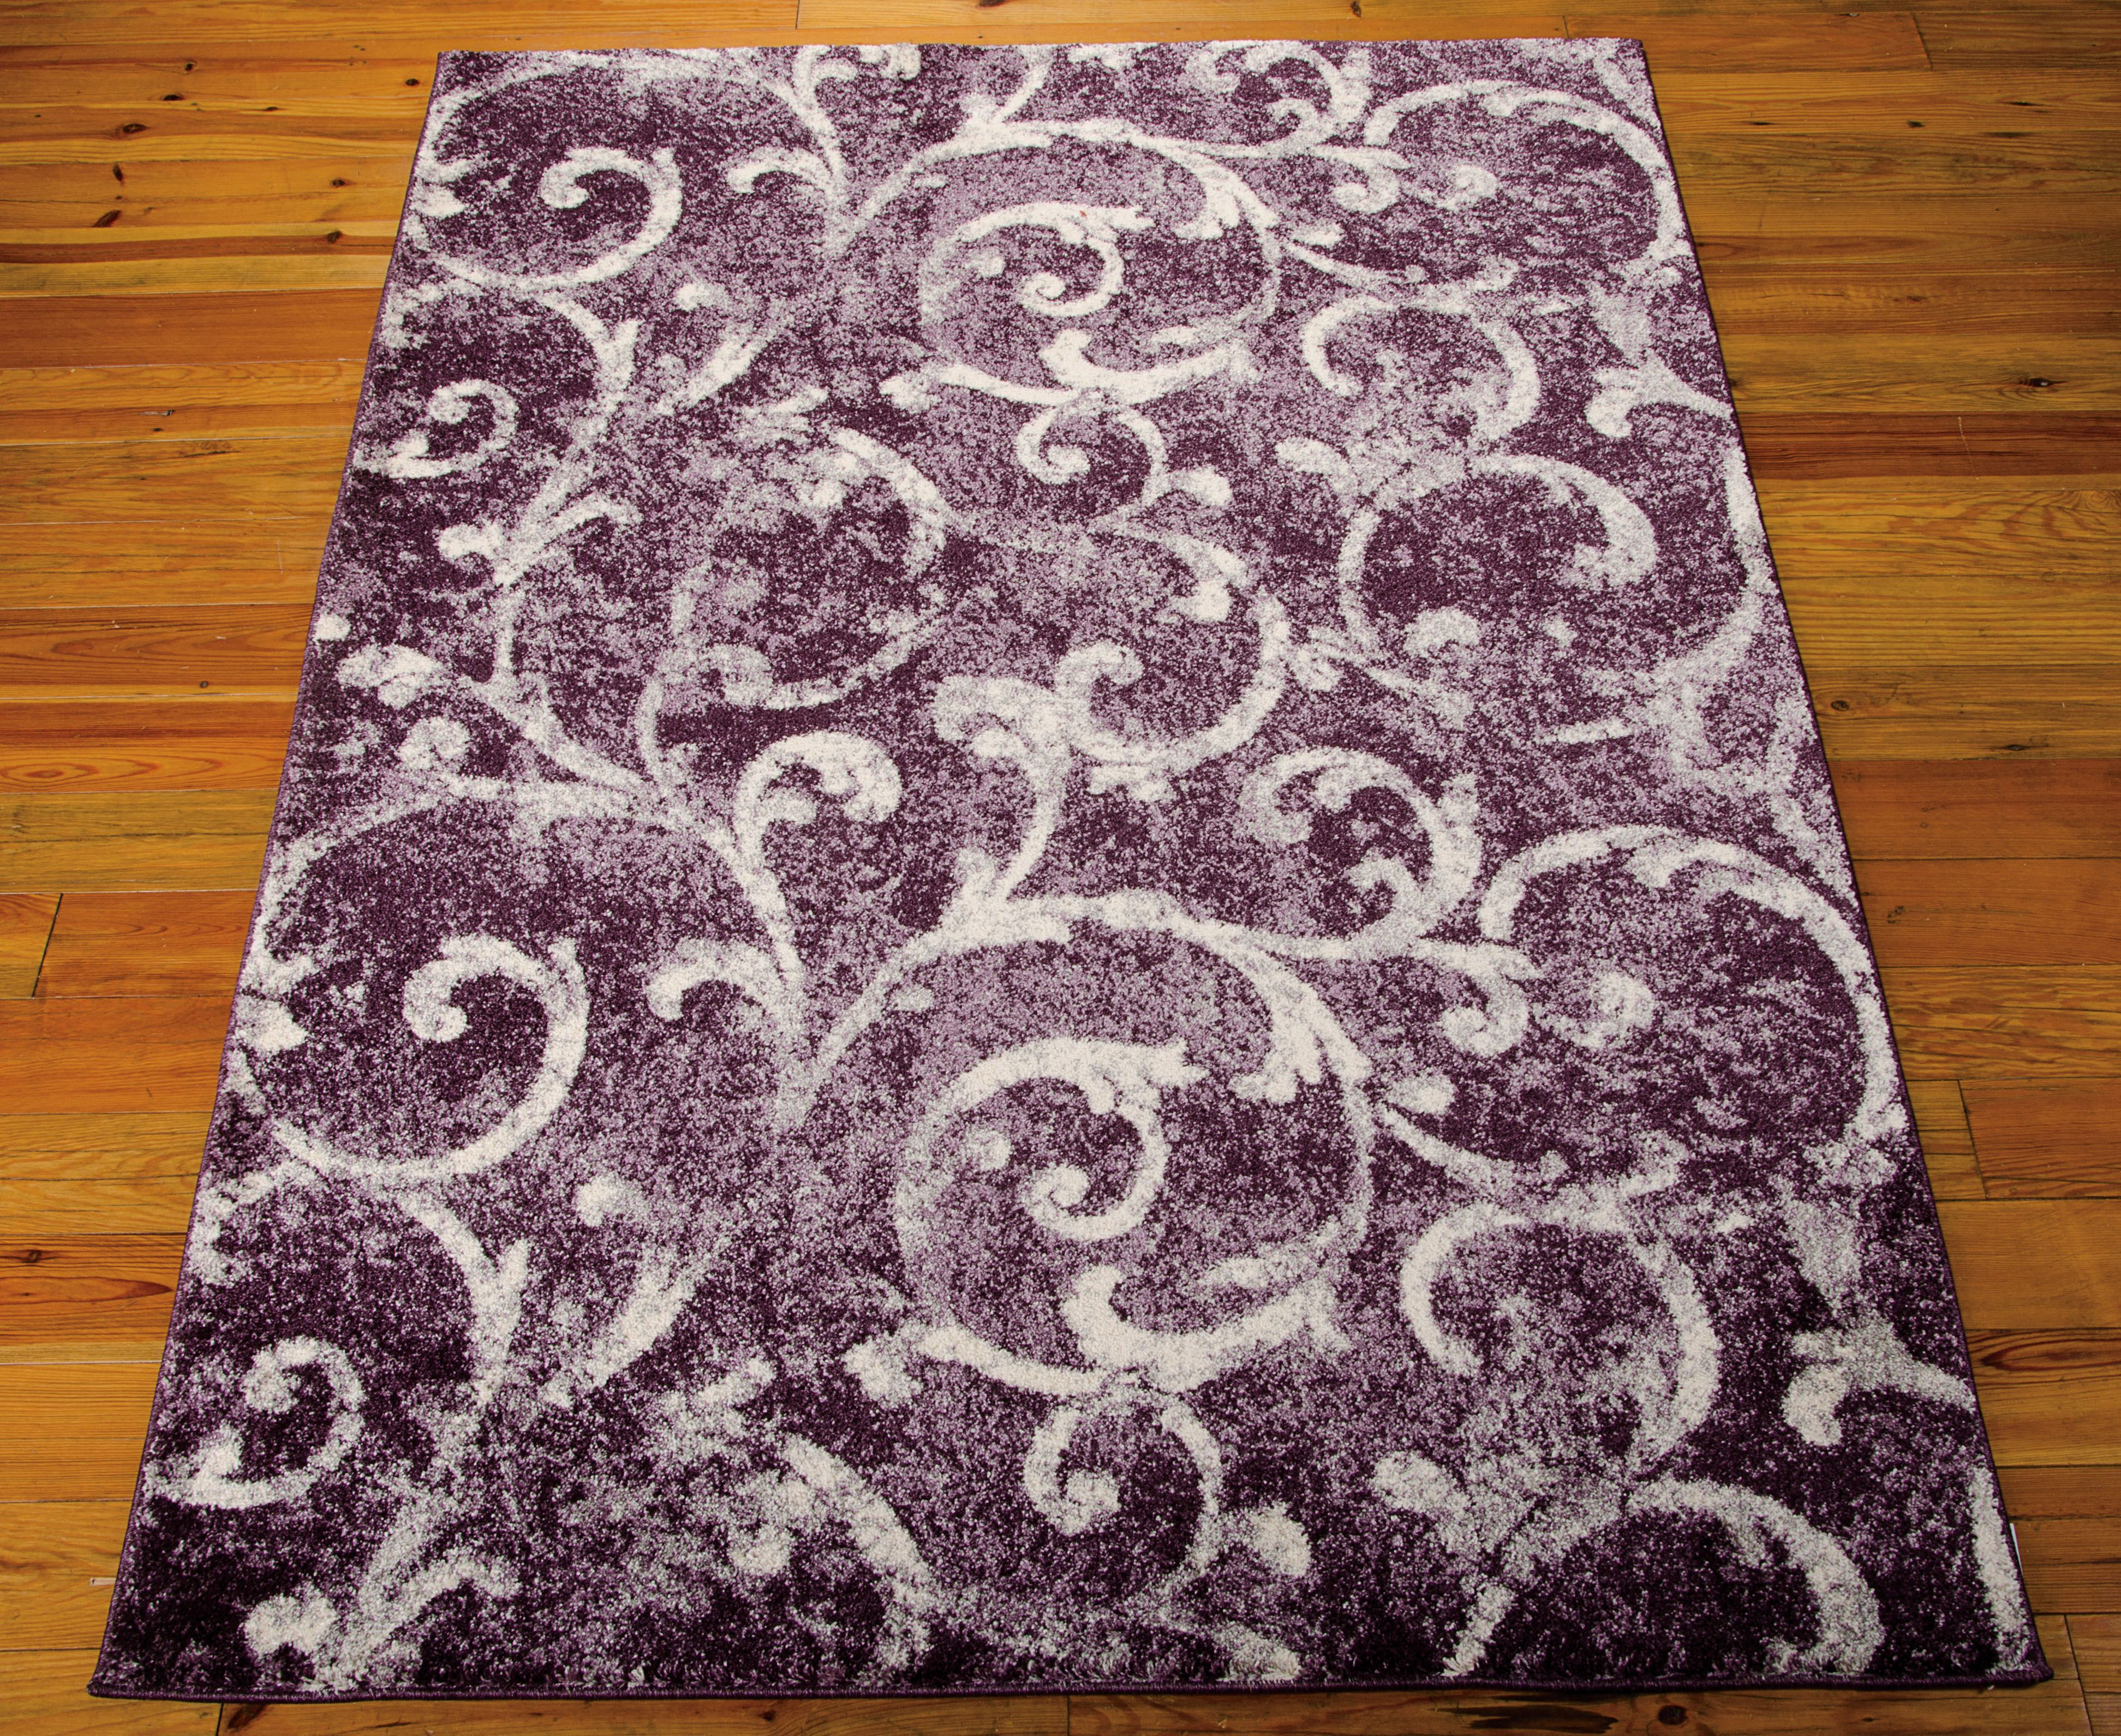 From the Kathy Ireland Home Santa Barbara Collection, the El Pacico Dark Violet is trend-setting shag that instills a sense of ease, elegance and cozy intimacy.